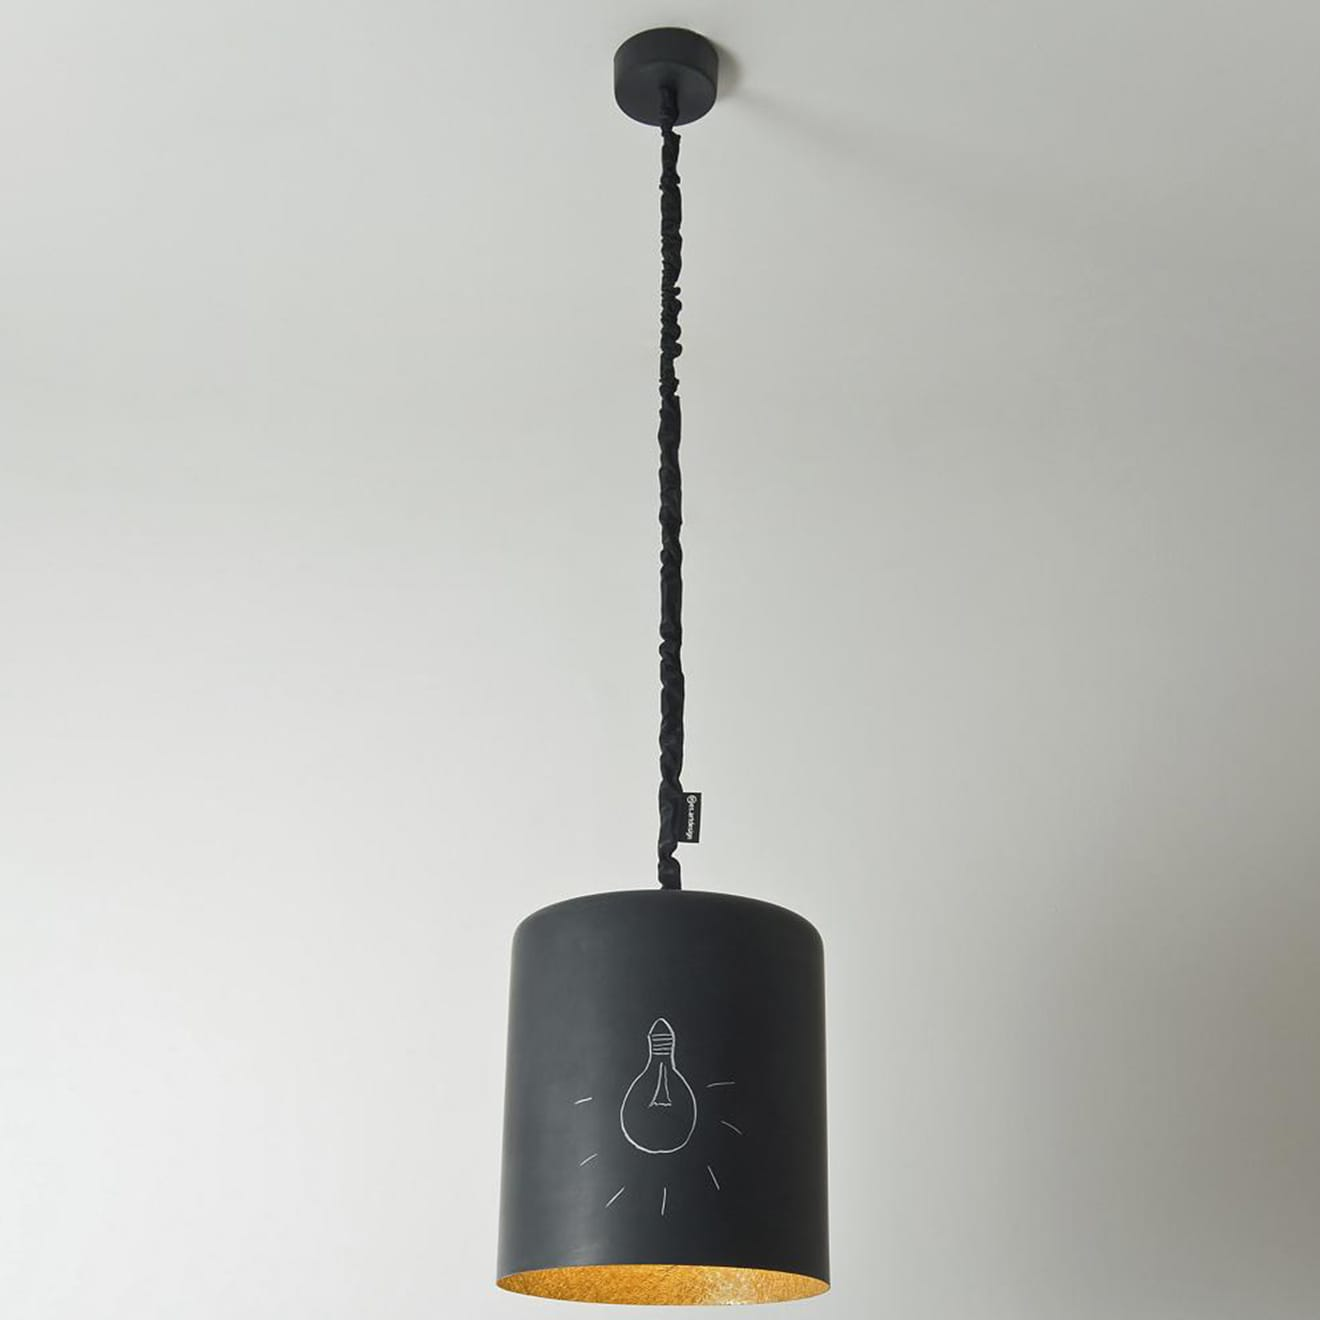 Bin Lavagna Pendant by In-Es Art Design